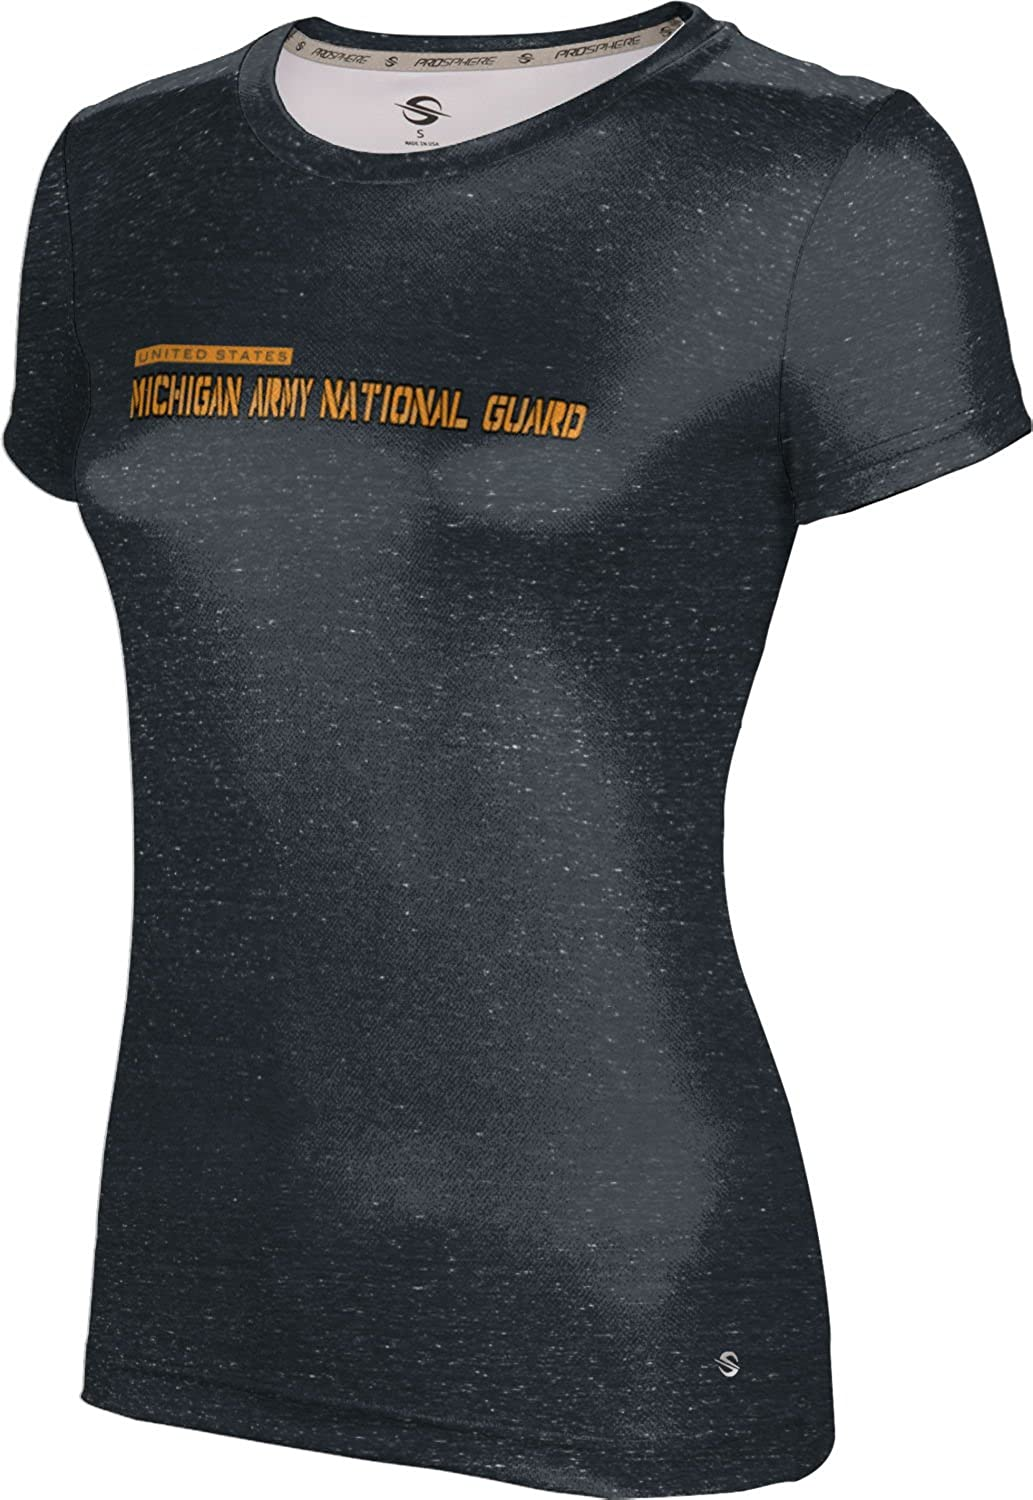 ProSphere Women's Michigan Army National Guard Military Heather Tech Tee